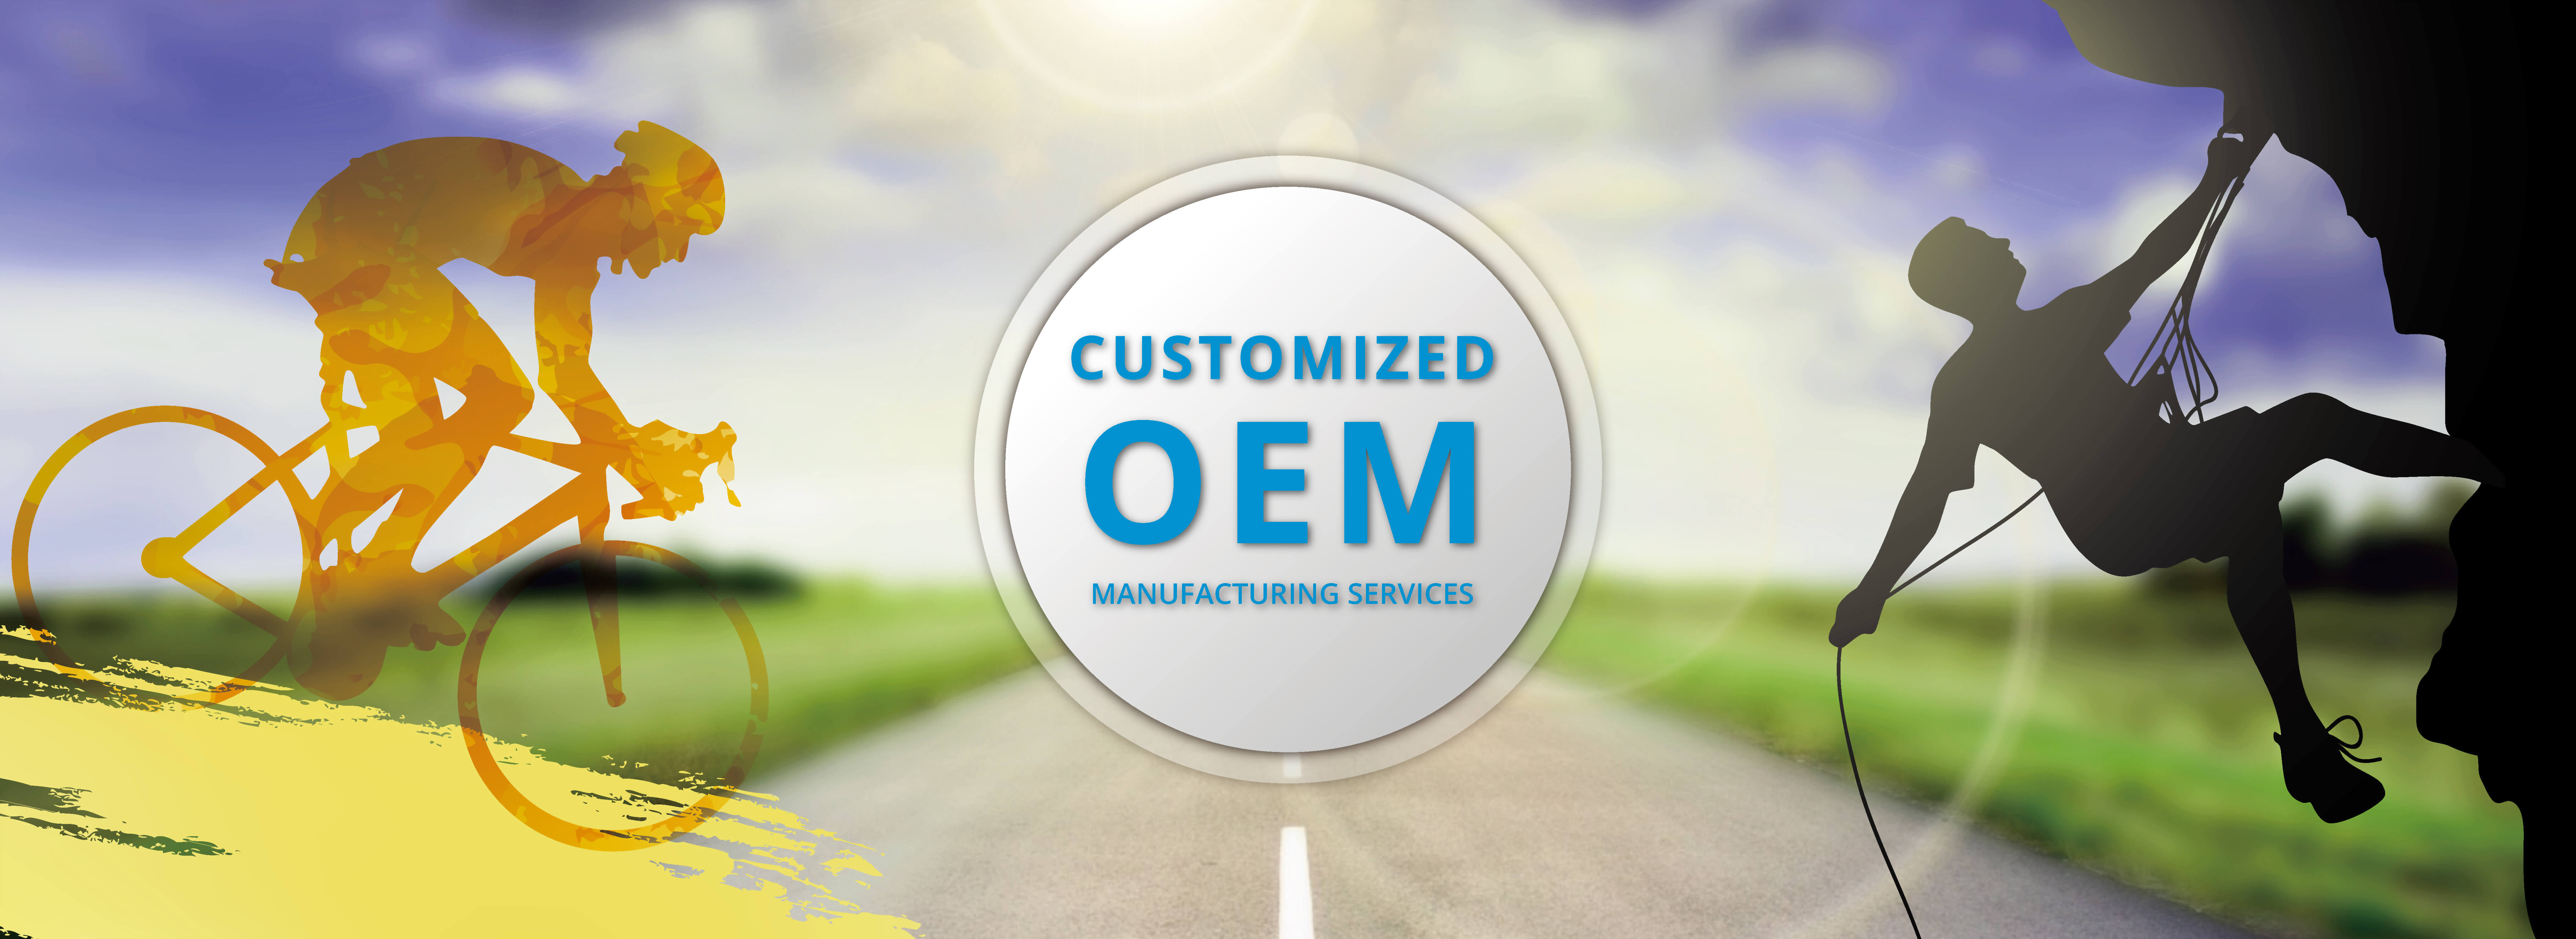 OEM Manufacturing Services